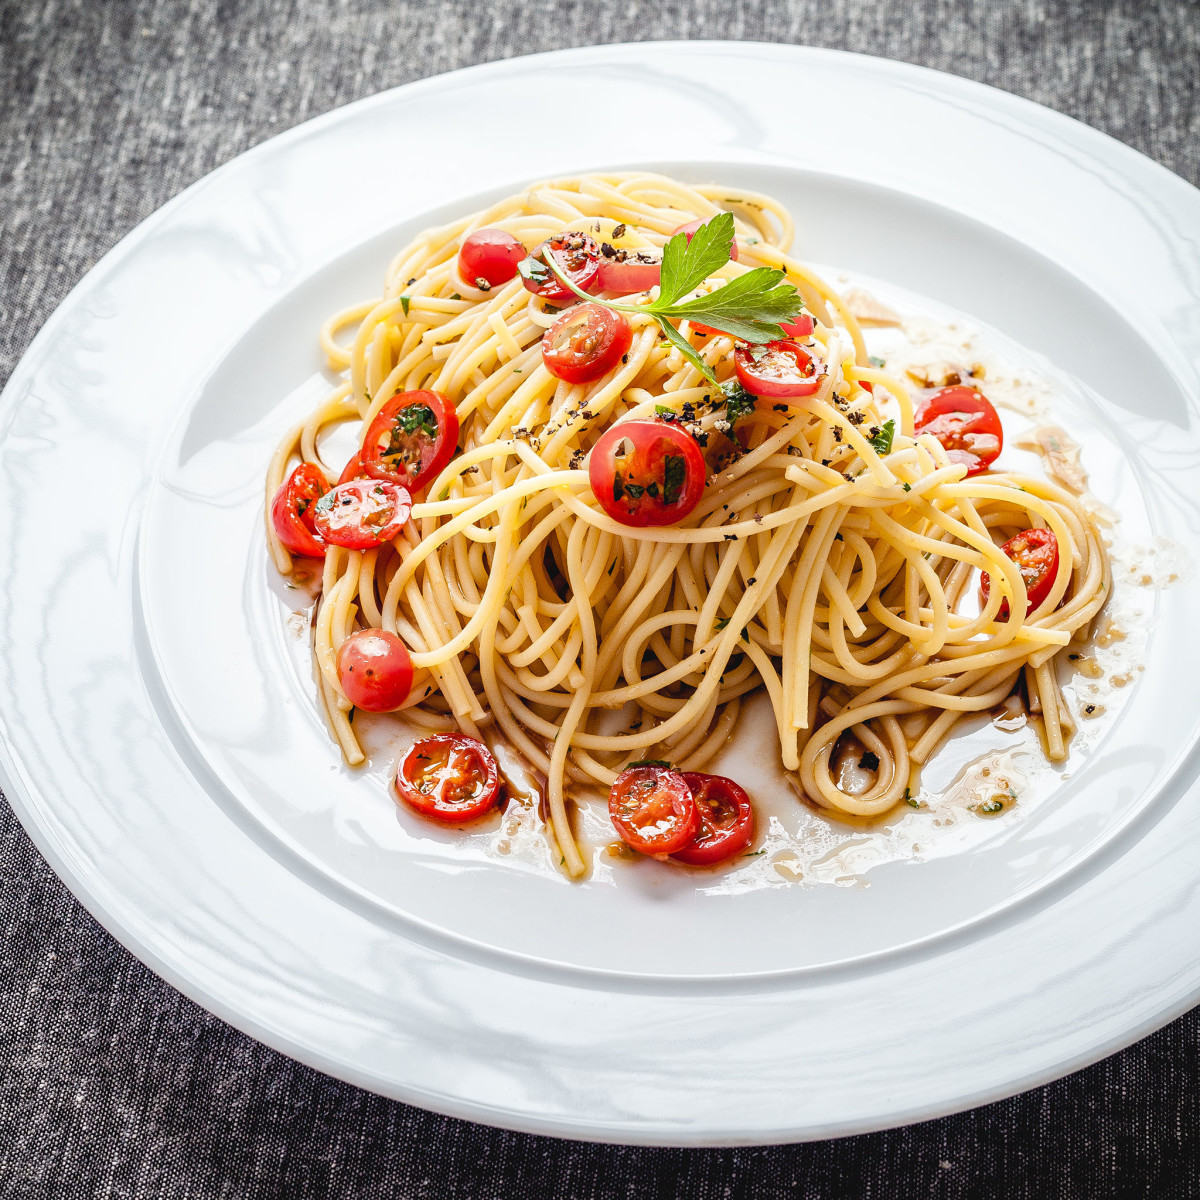 Spaghetti, Cherry Tomatoes, Olive Oil